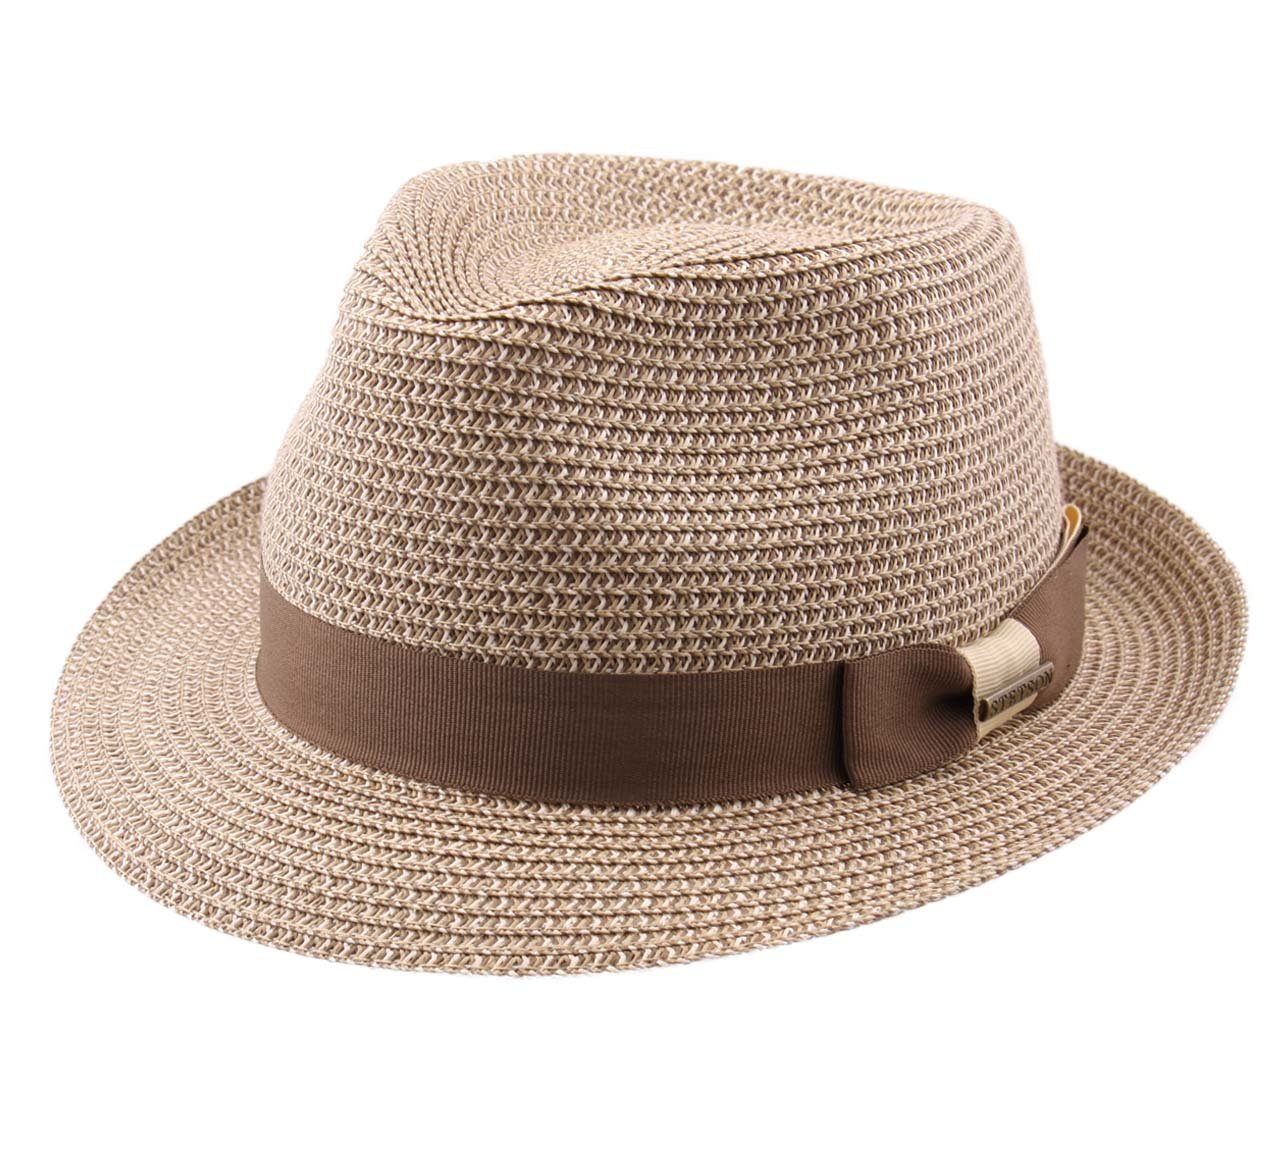 Stetson Women's Trilby Toyo Trilby Hat Packable Size M Brown-67